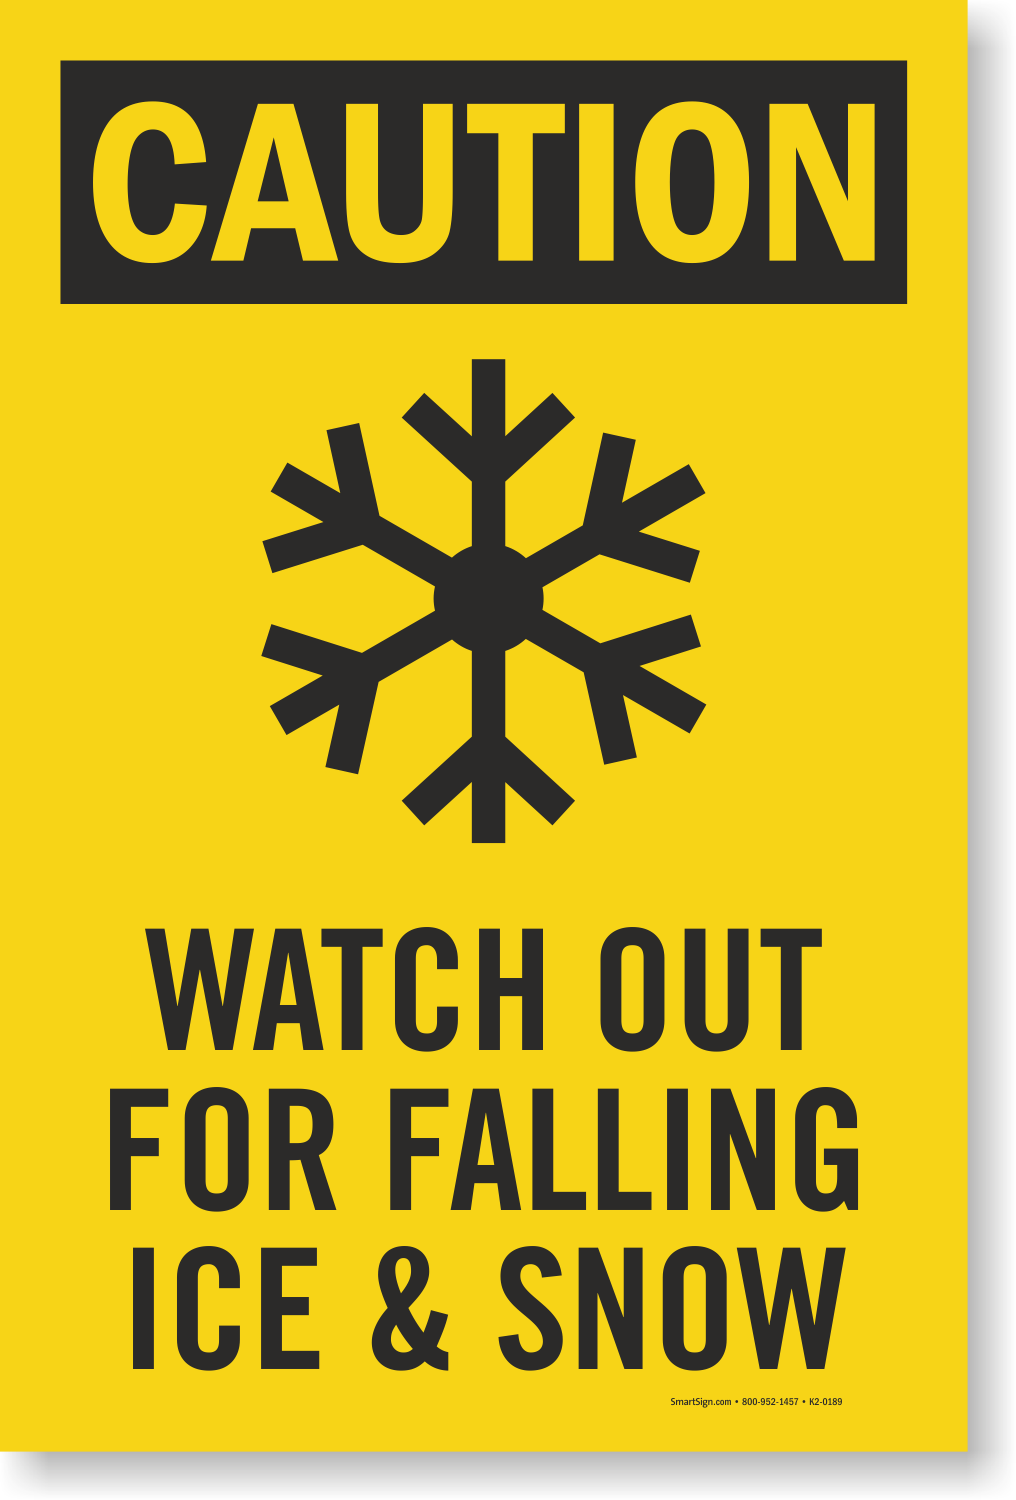 Watch Out Falling Ice Snow Sidewalk Sign Frostbite Symbol Sku K2